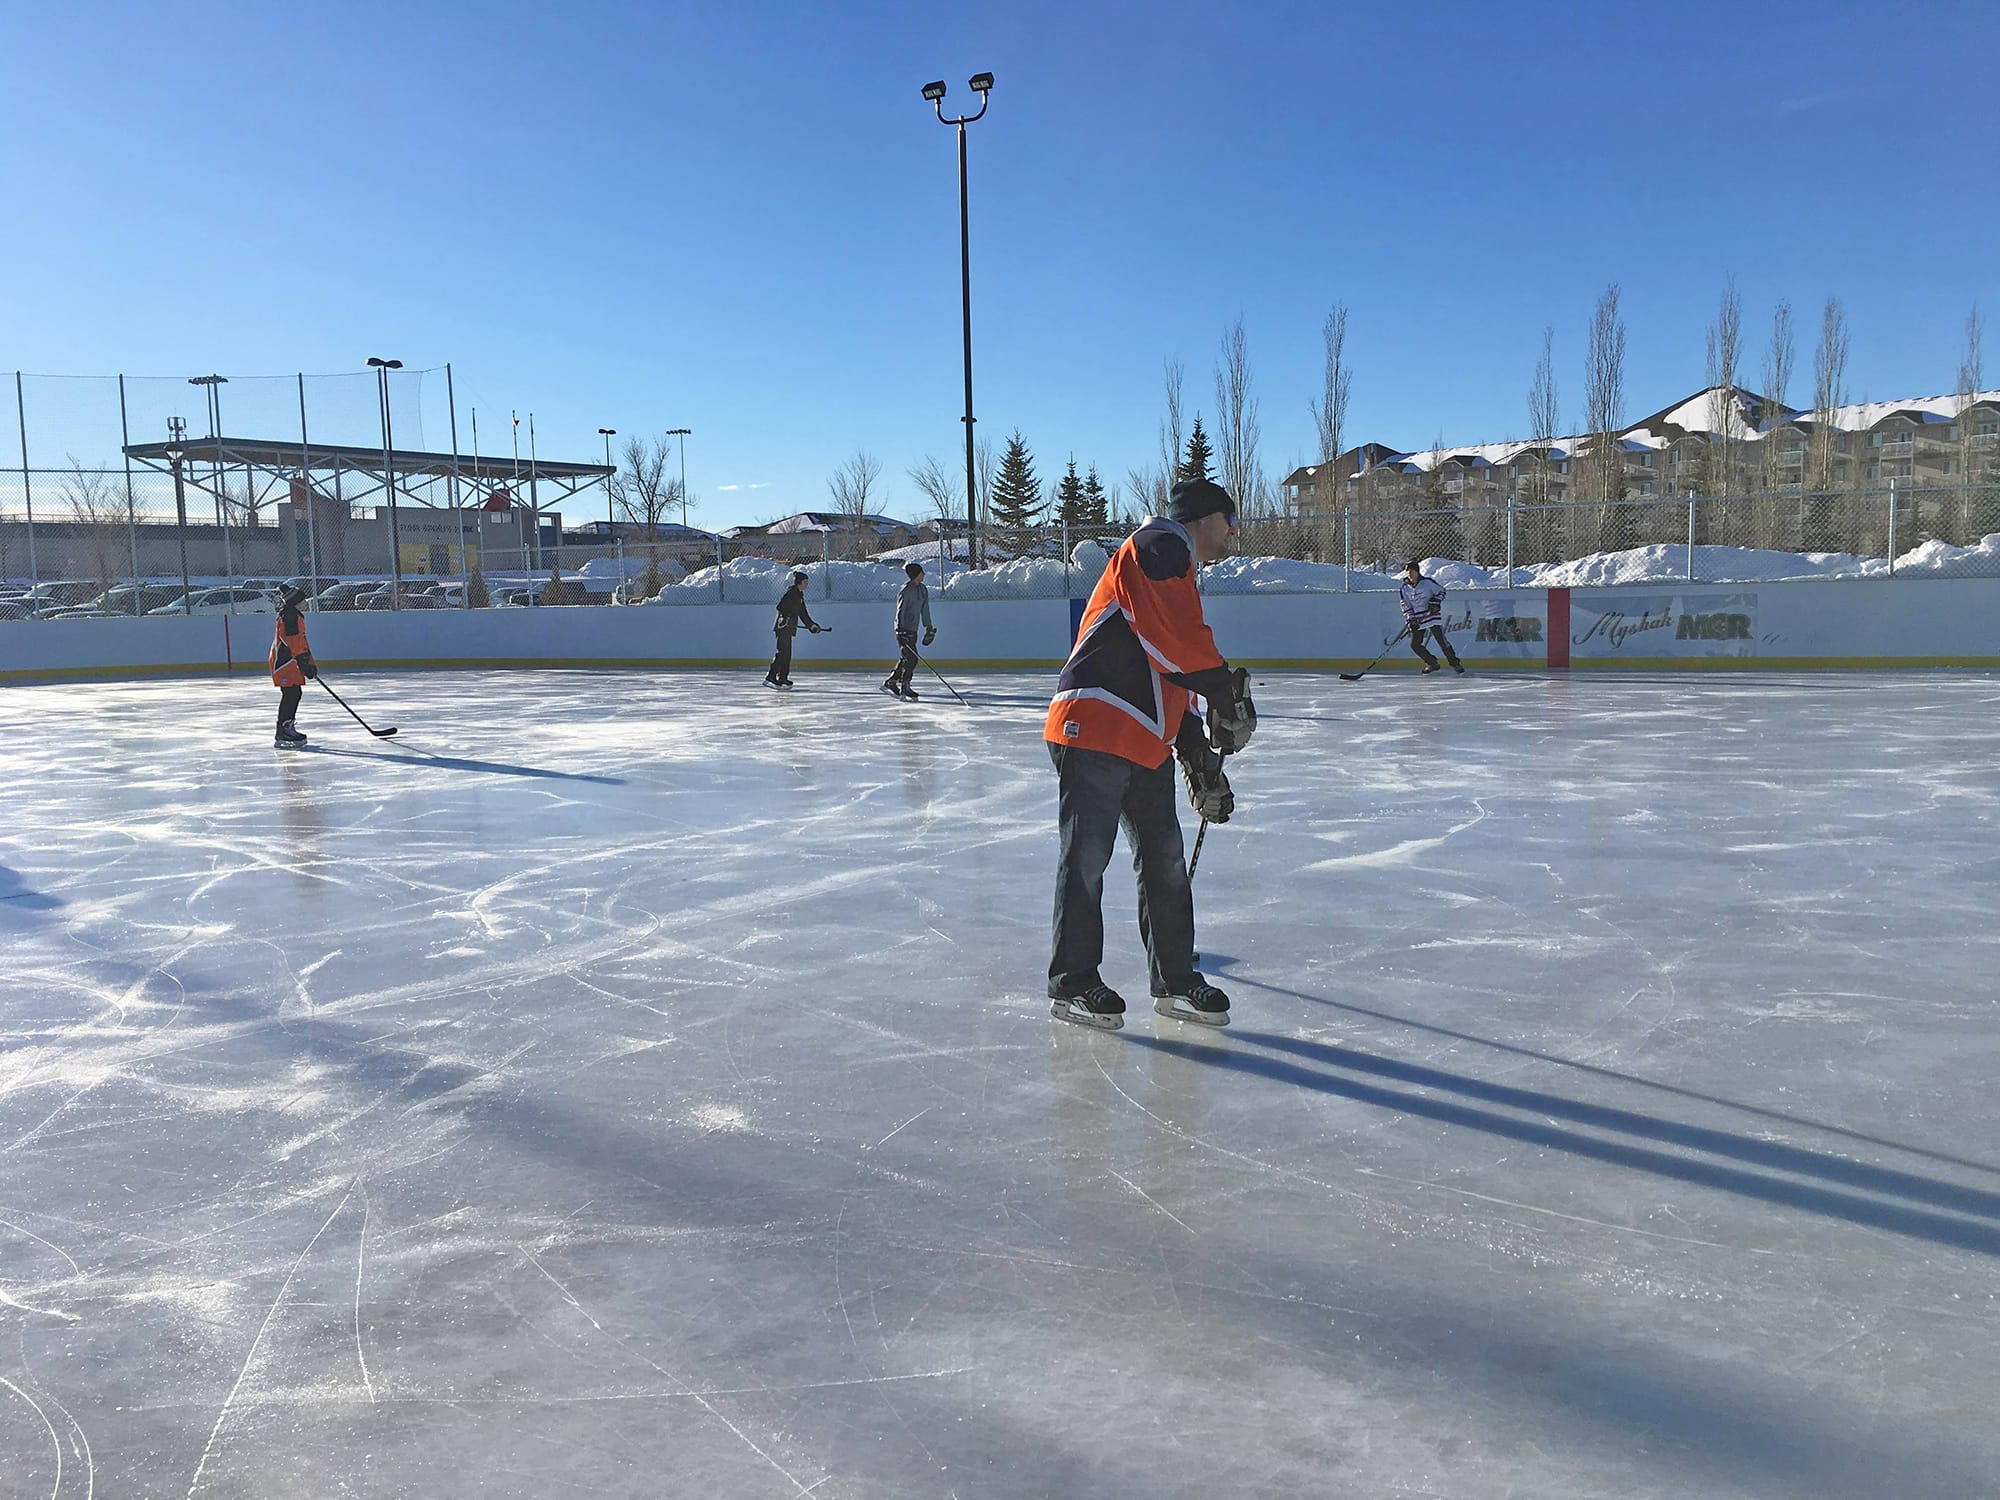 Tri Leisure Centre Outdoor Arena with hockey players